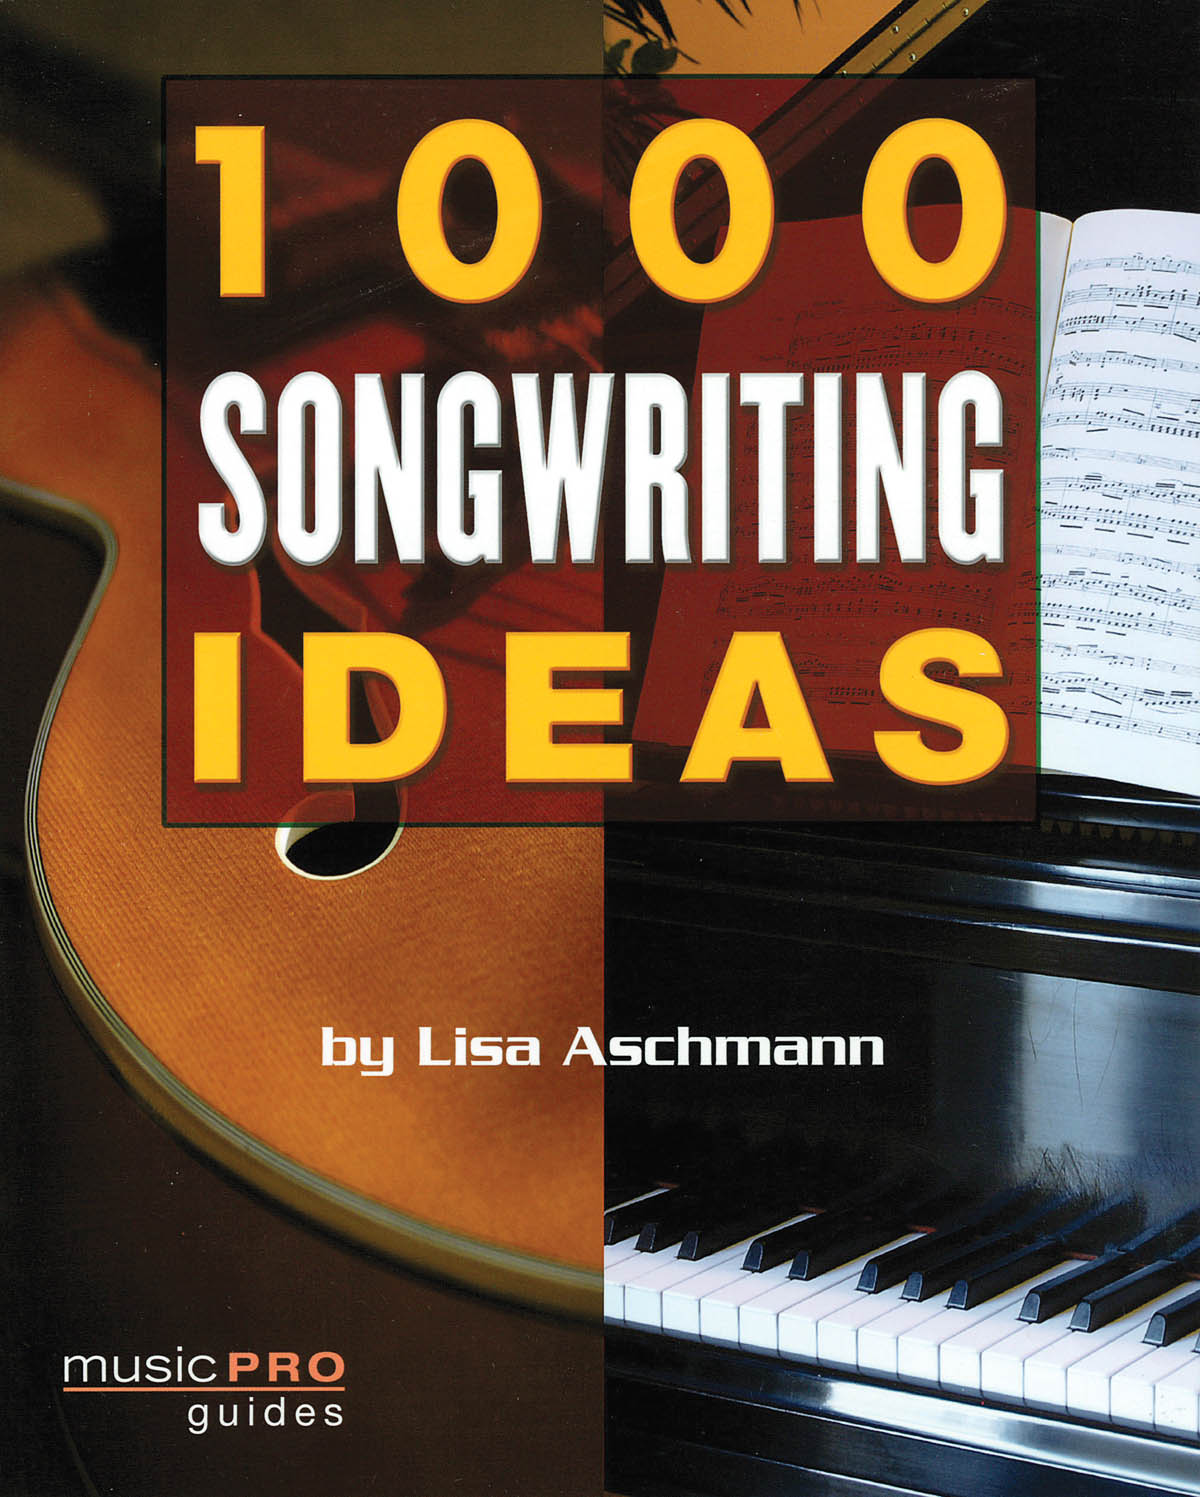 1000 Songwriting Ideas: Reference Books: Reference